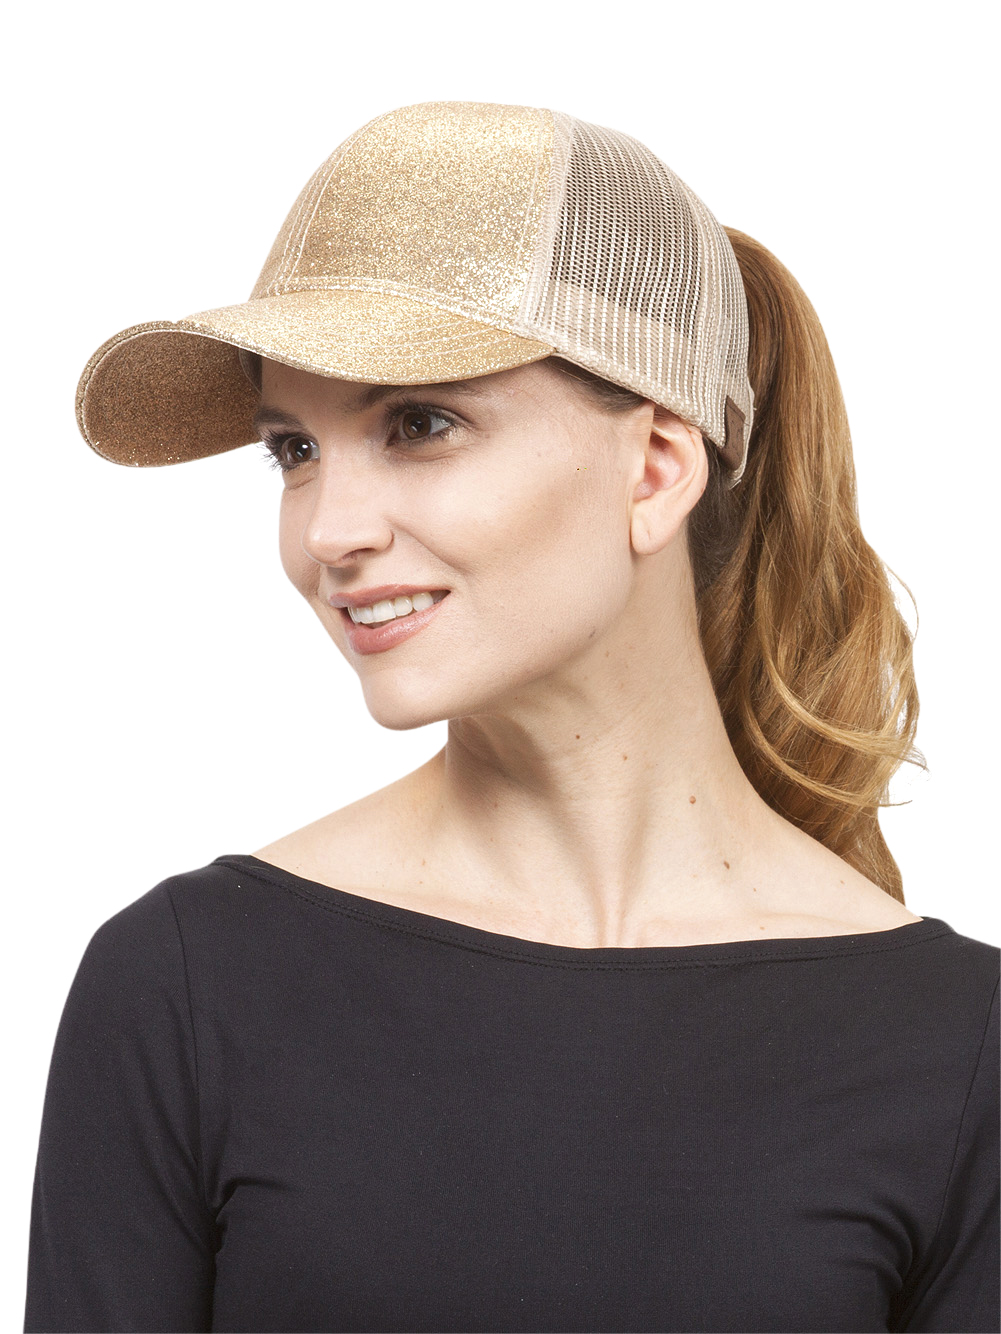 Glitter Pony Tail Outlet Mesh Adjustable Hat